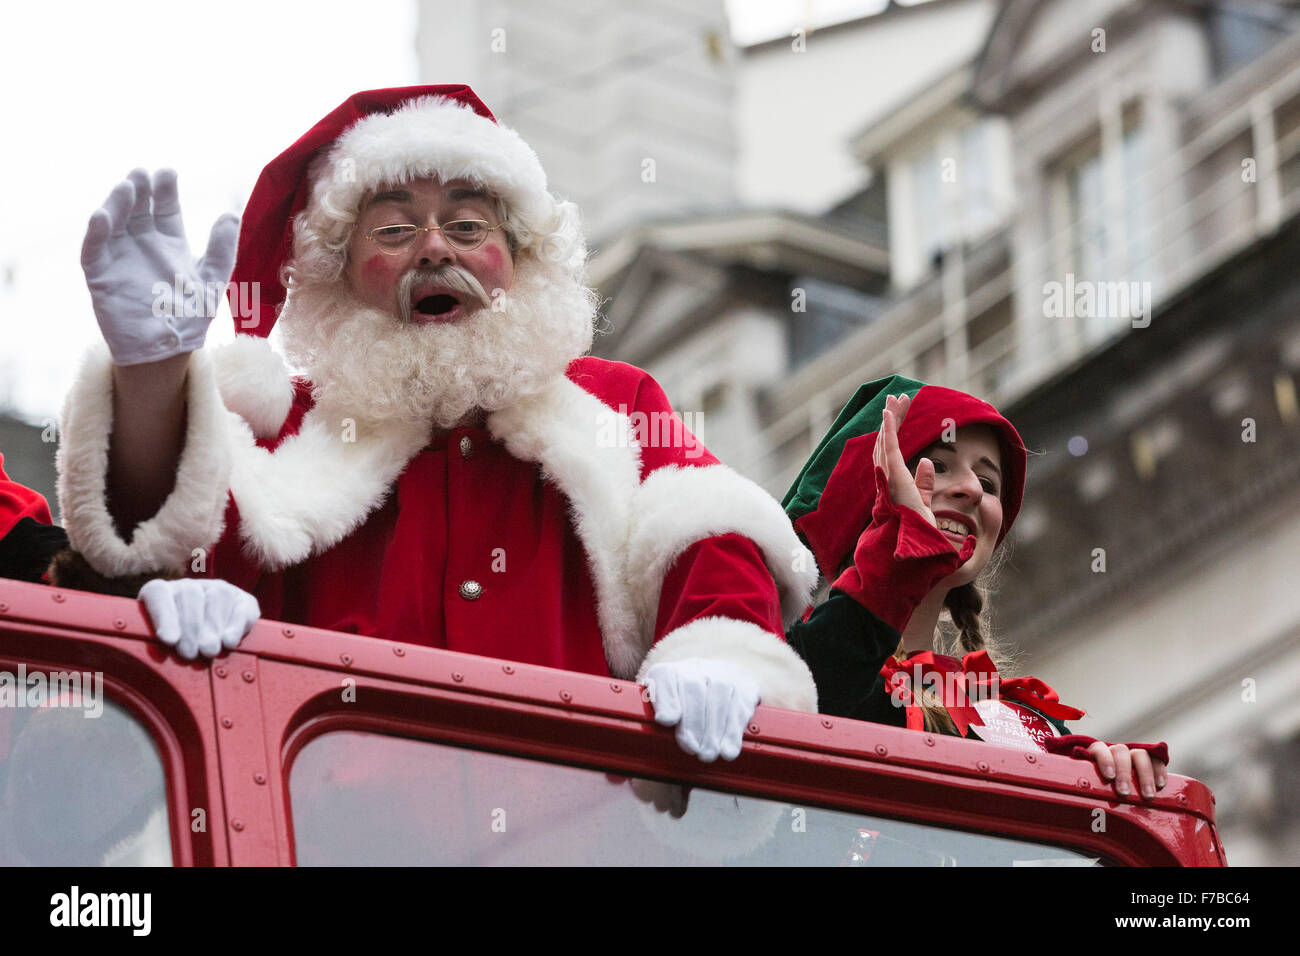 London, UK. 28 November 2015. Santa Claus travels with an elf on a double-decker bus. The inaugural Hamleys Christmas - Stock Image